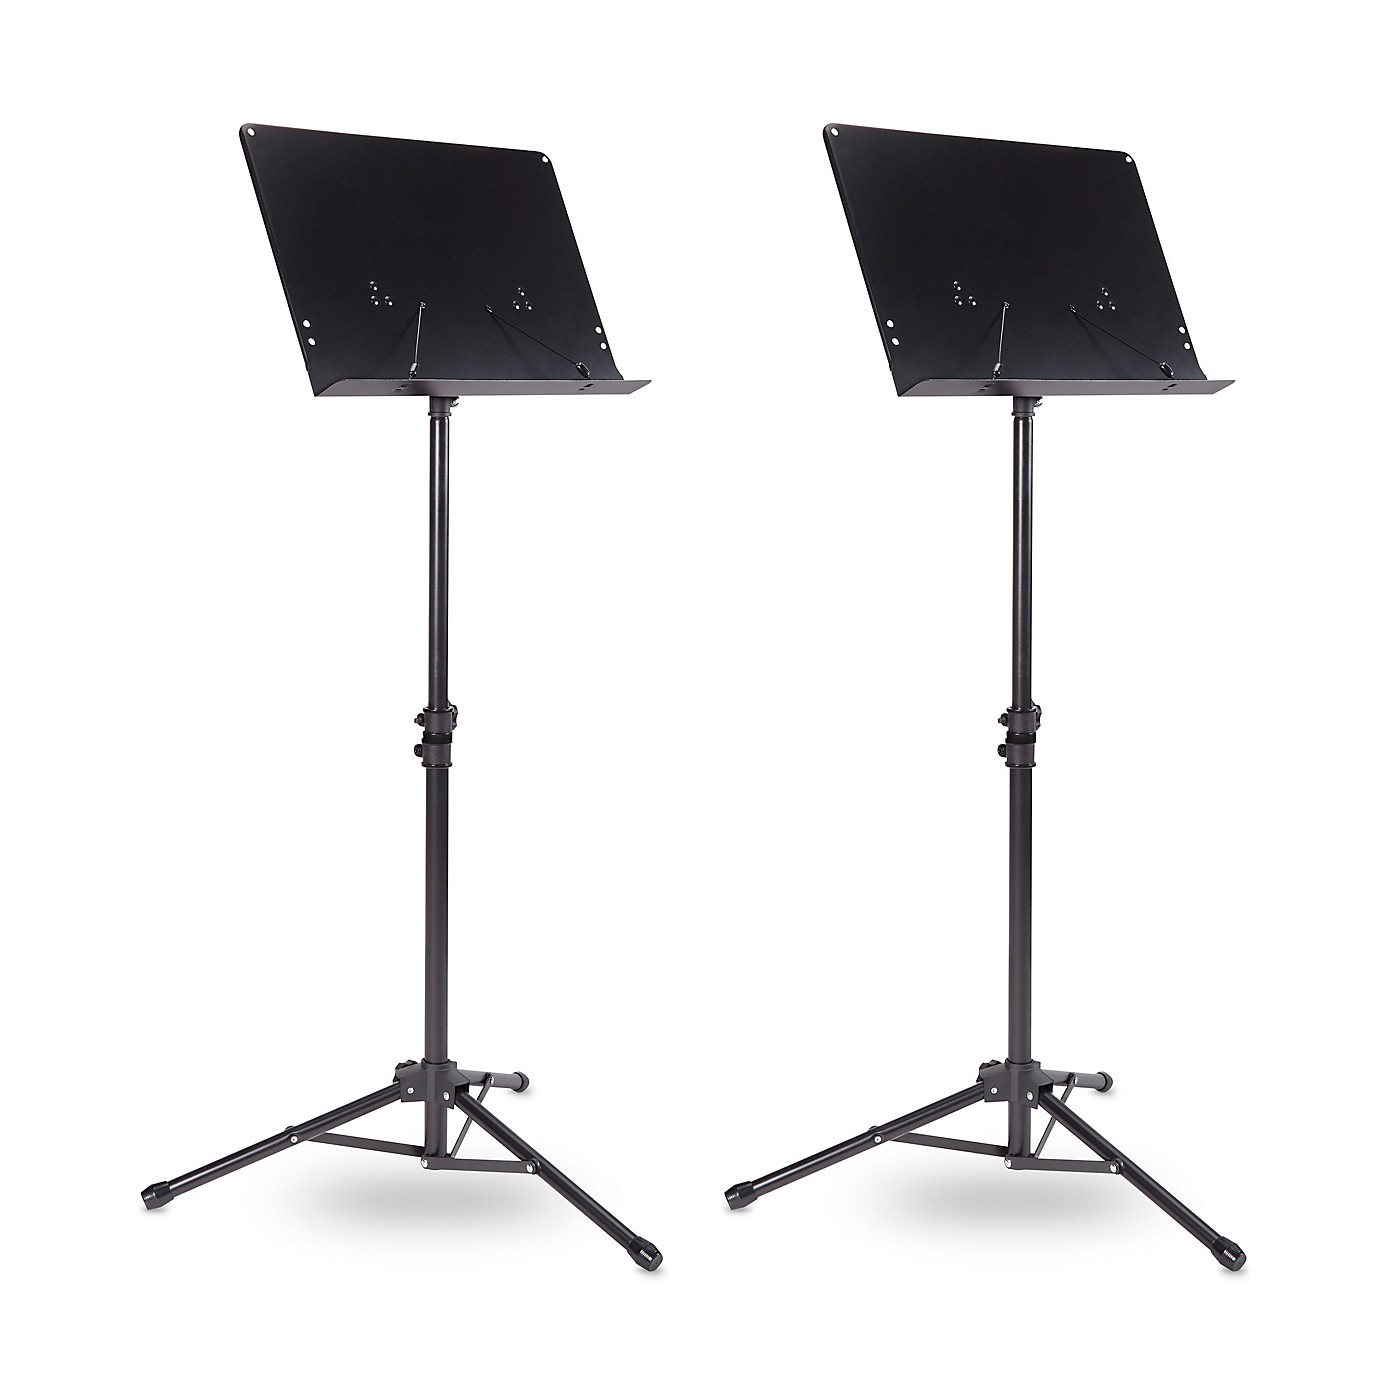 Musician's Gear Tripod Orchestral Music Stand Regular Black - 2 Pack thumbnail